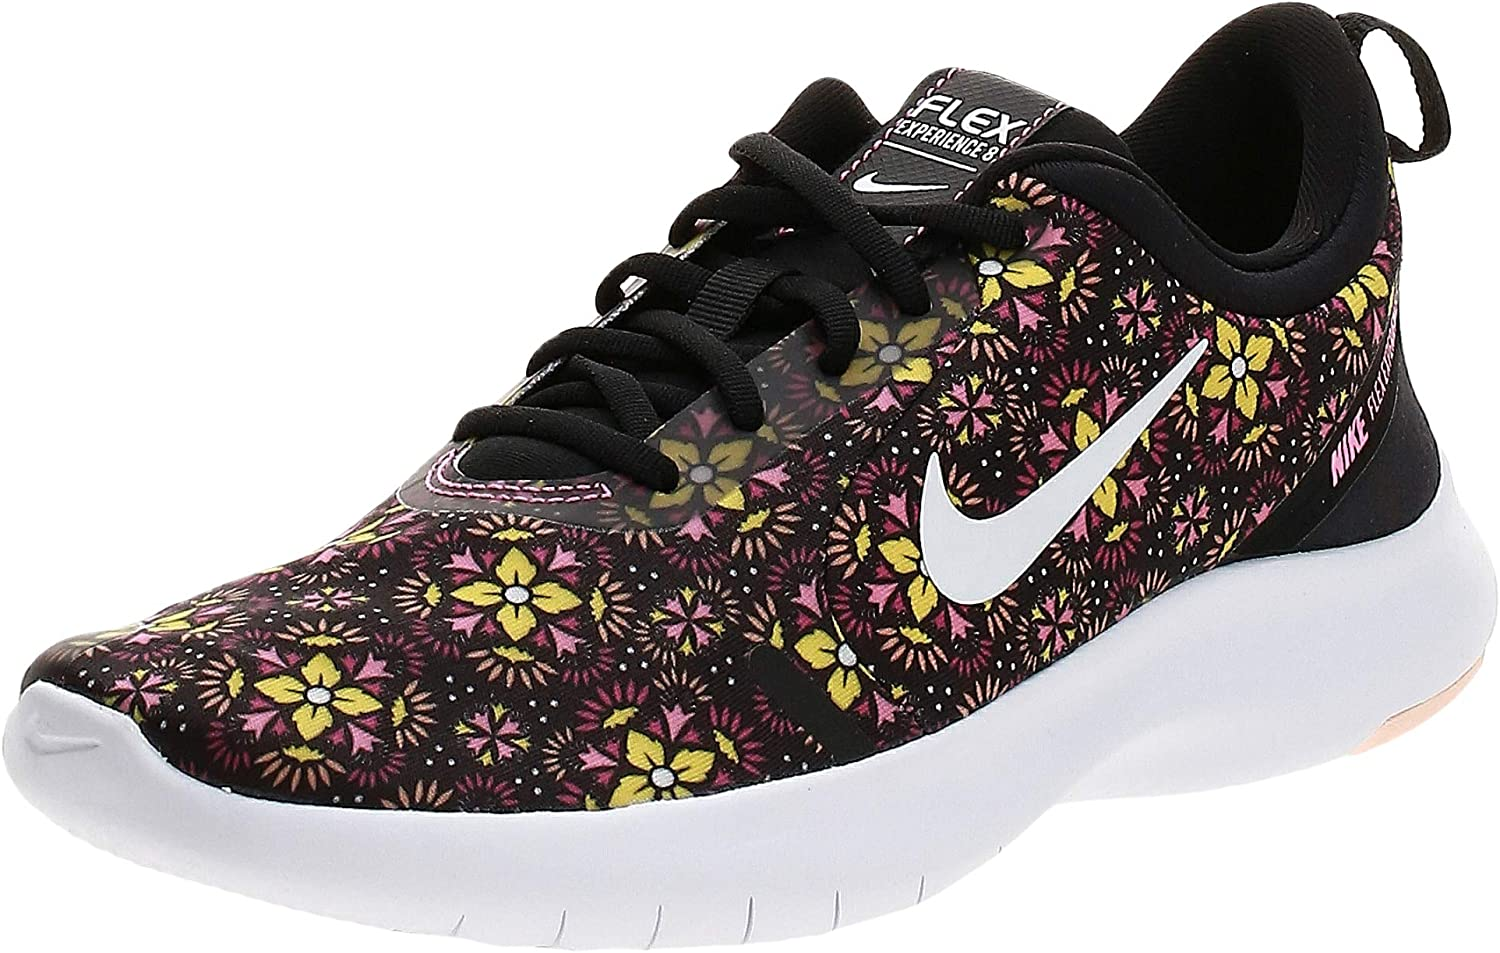 Nike Women's Flex Experience Rn 8 Se Ankle-High Fabric Training Shoes